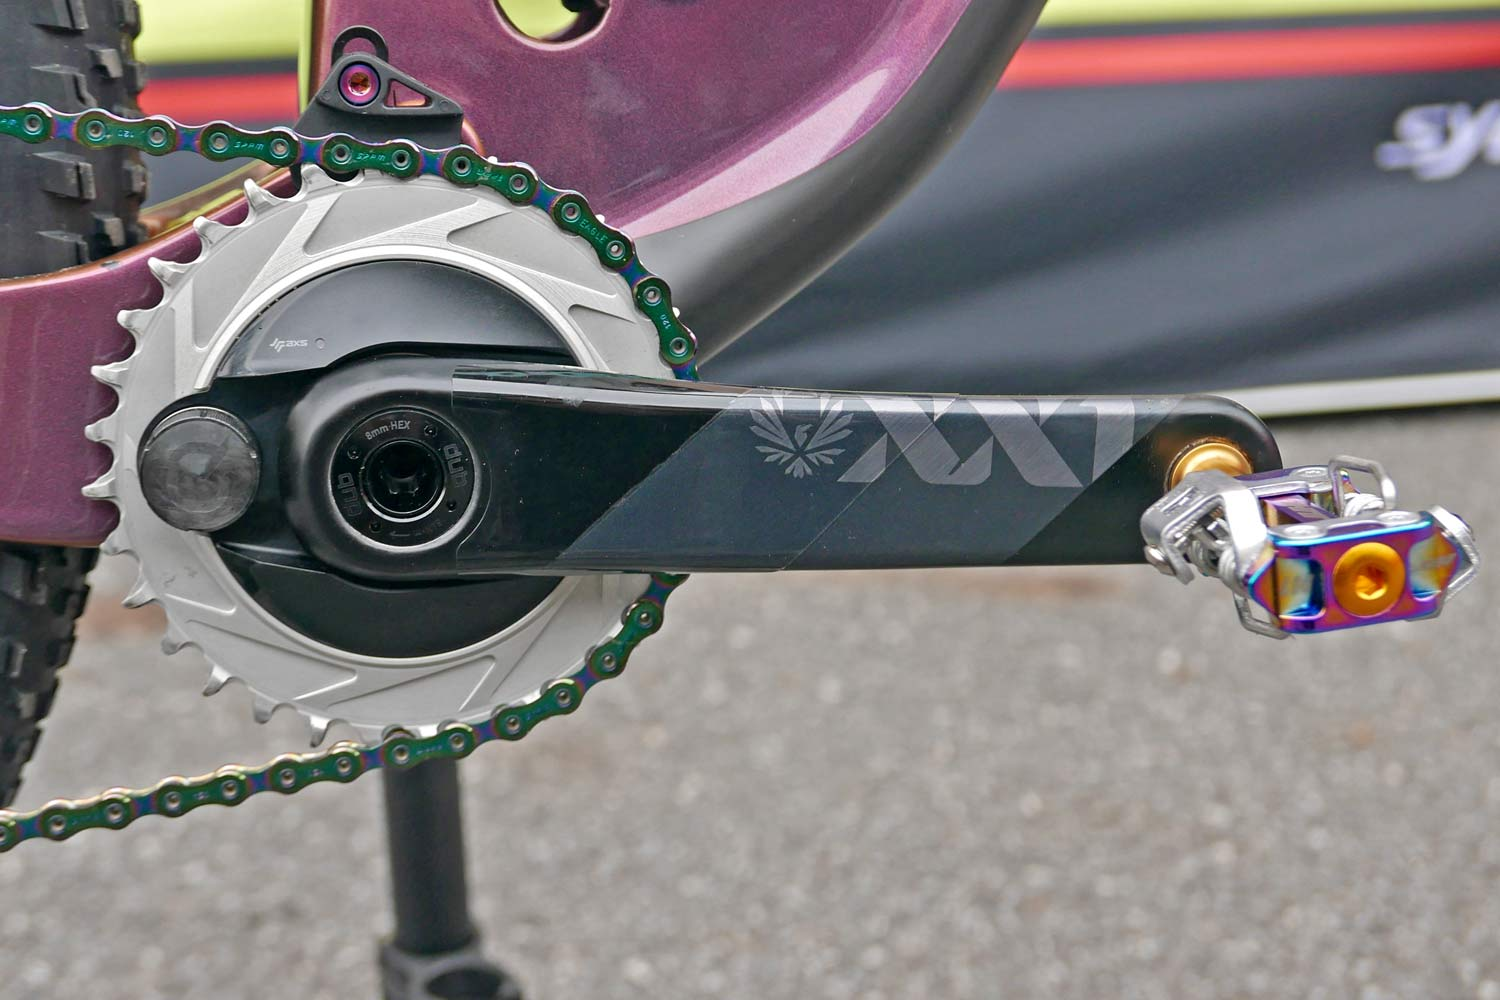 Prototype Blackbox SRAM XX1 AXS integrated direct mount power meter chainring, Kate 32T ring